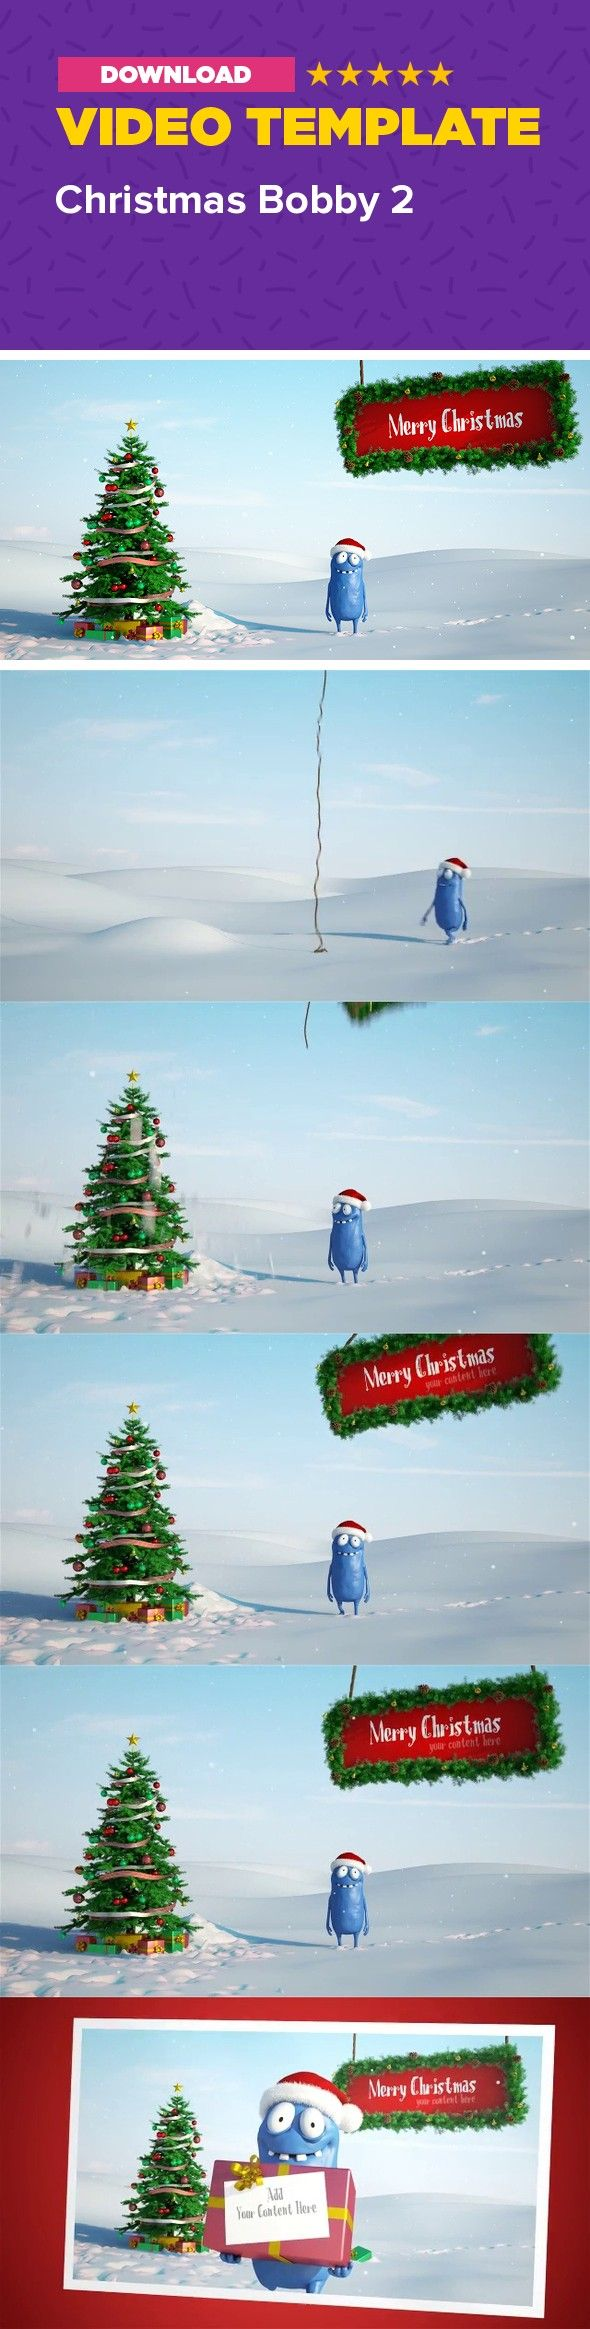 3d, animation, card, cartoon, character, christmas, funny, gift, holiday, logo, mascot, present, snow, winter, xmas                     After Effects CS4 and above HD Resolution – 1920×1080 / 24fps / 17 sec No plug-ins required Very fast render – about 2 minutes on I7 There are 3 placeholders. The board (top right), the card on the gift and the card at the end where the logo is. To add your content just drag and drop it. There are masks for the different elements so you can easily make…